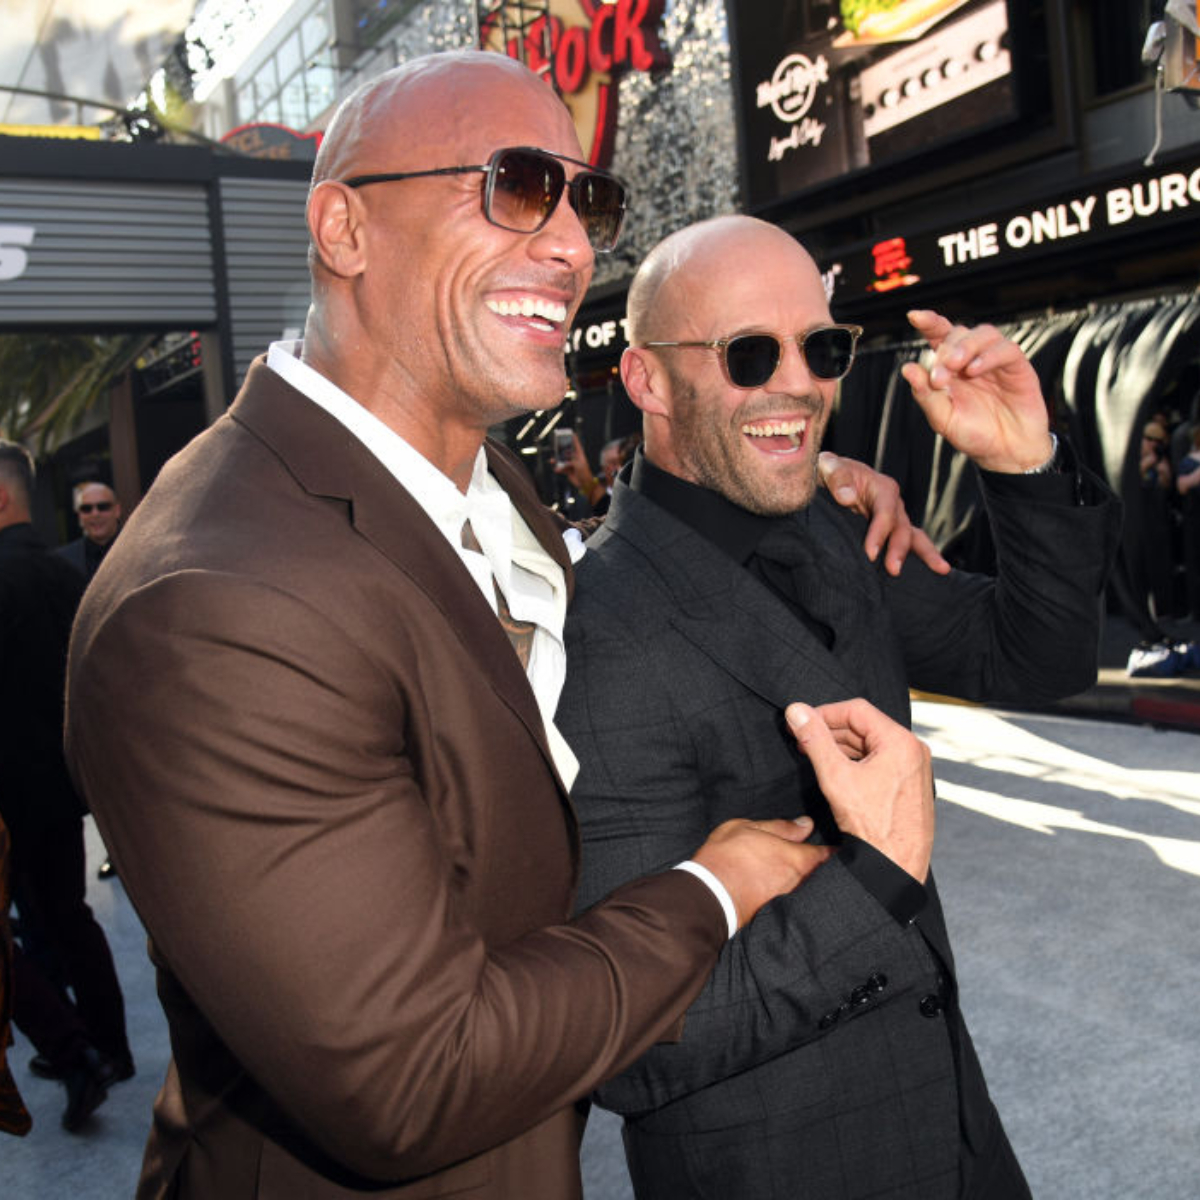 Hobbs & Shaw: The Rock & Jason Statham's film to have a sequel? Producer spills the beans